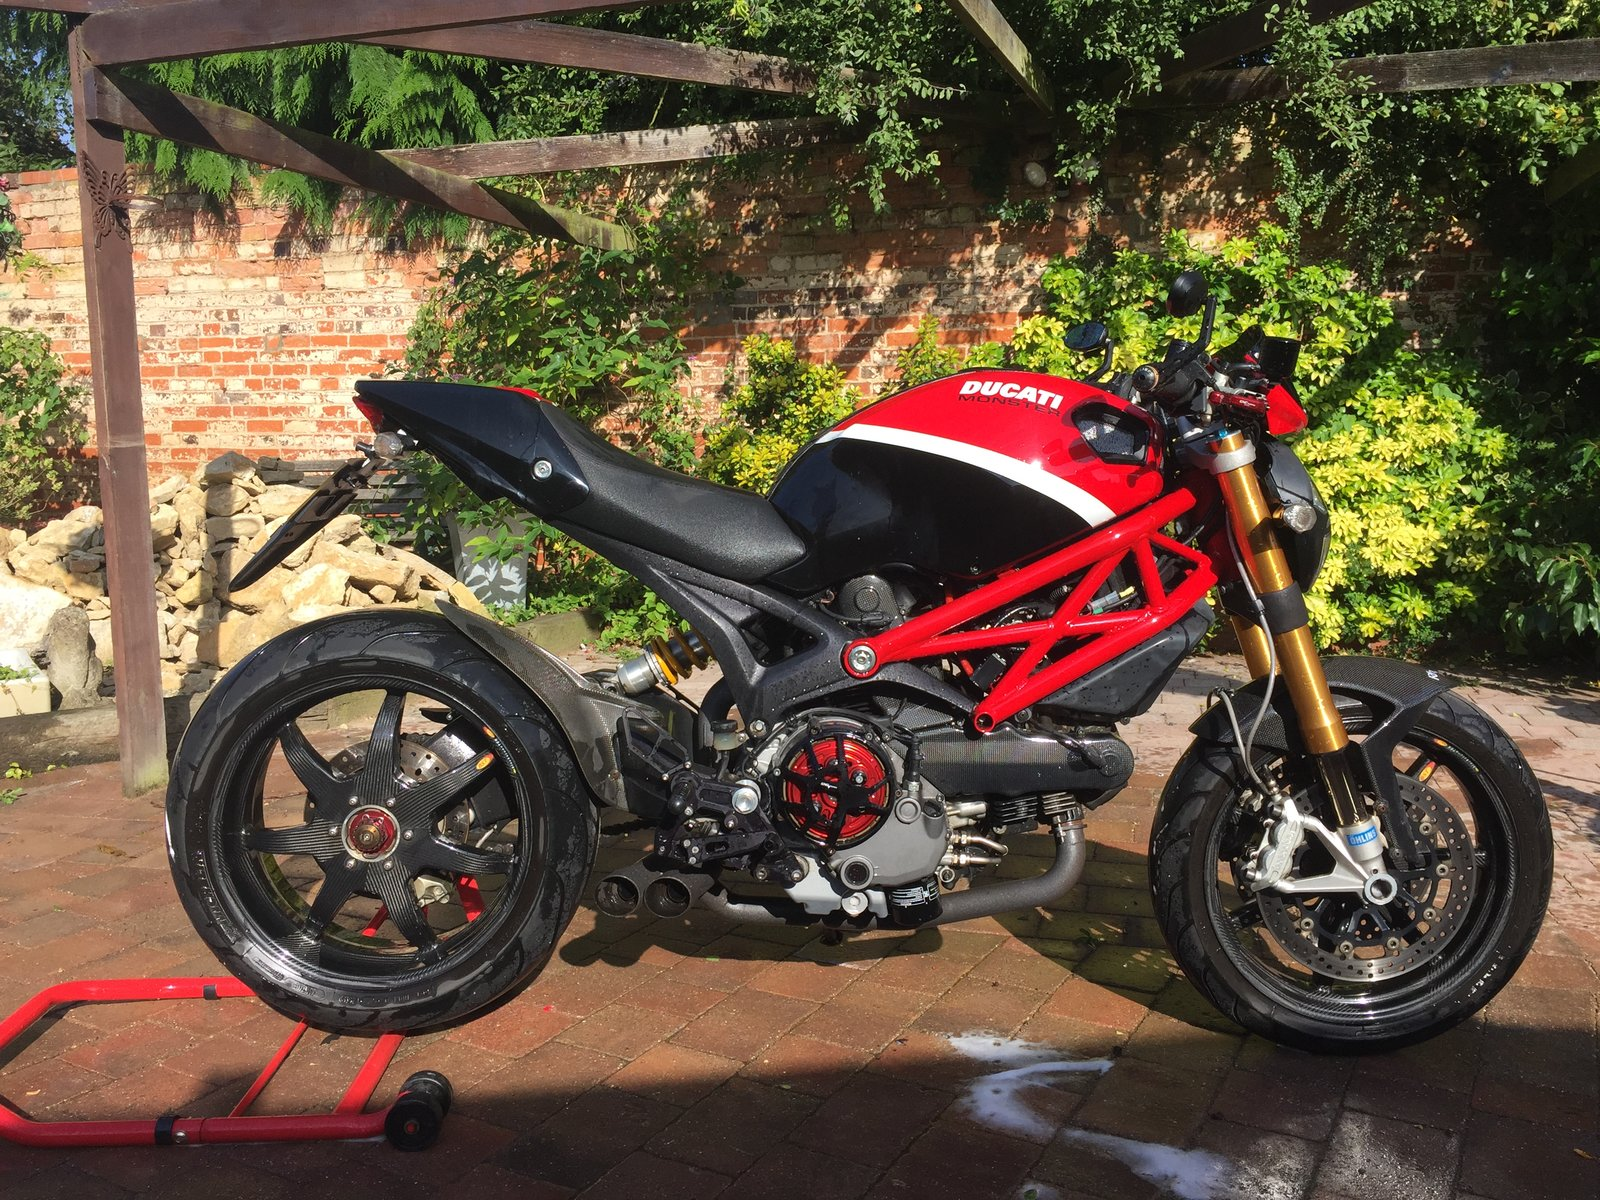 for sale ducati monster 1100s lightest in uk ducati forum. Black Bedroom Furniture Sets. Home Design Ideas